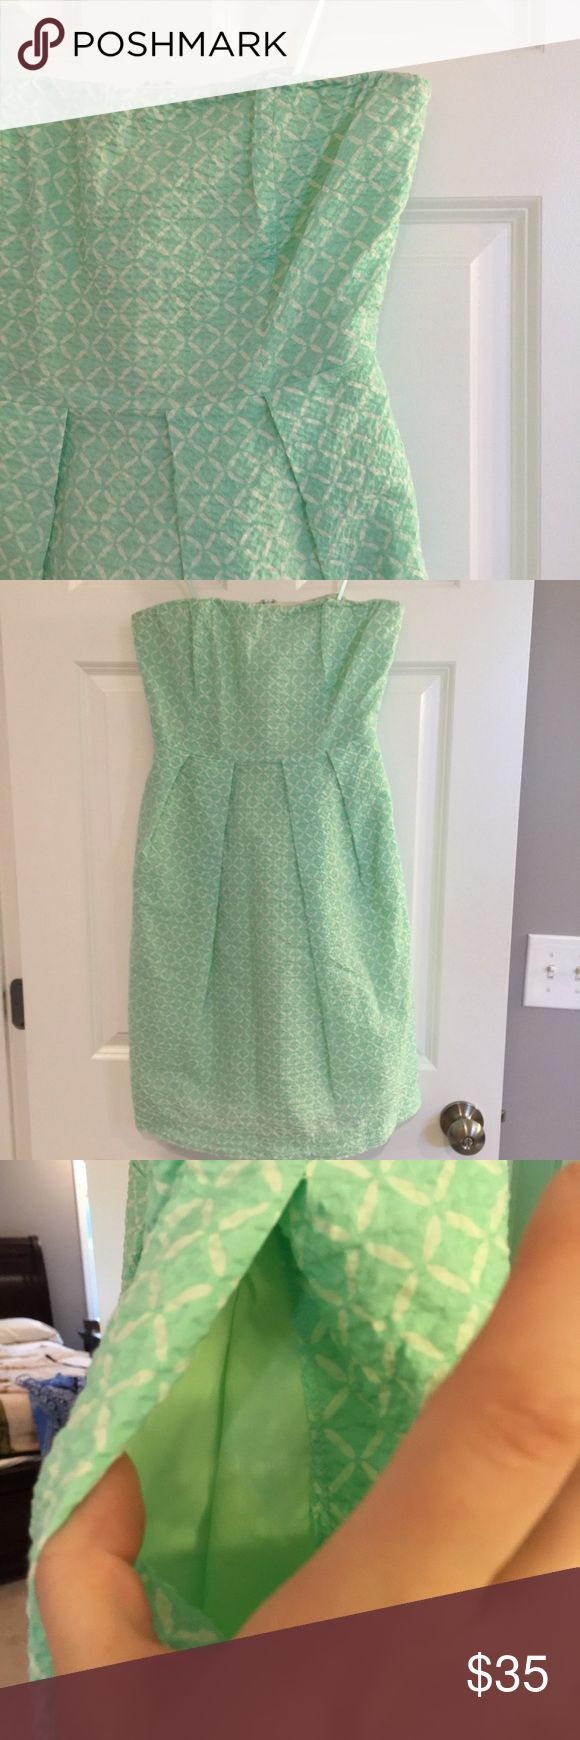 J. Crew Mint Green Strapless Summer Dress True to size. Waffle like fabric that is mint green with white diamonds. Has pockets and a bra elastic strap for suppose to hold it self up since it's strap less. Super cute and great for the coming up summer. J. Crew Dresses Strapless